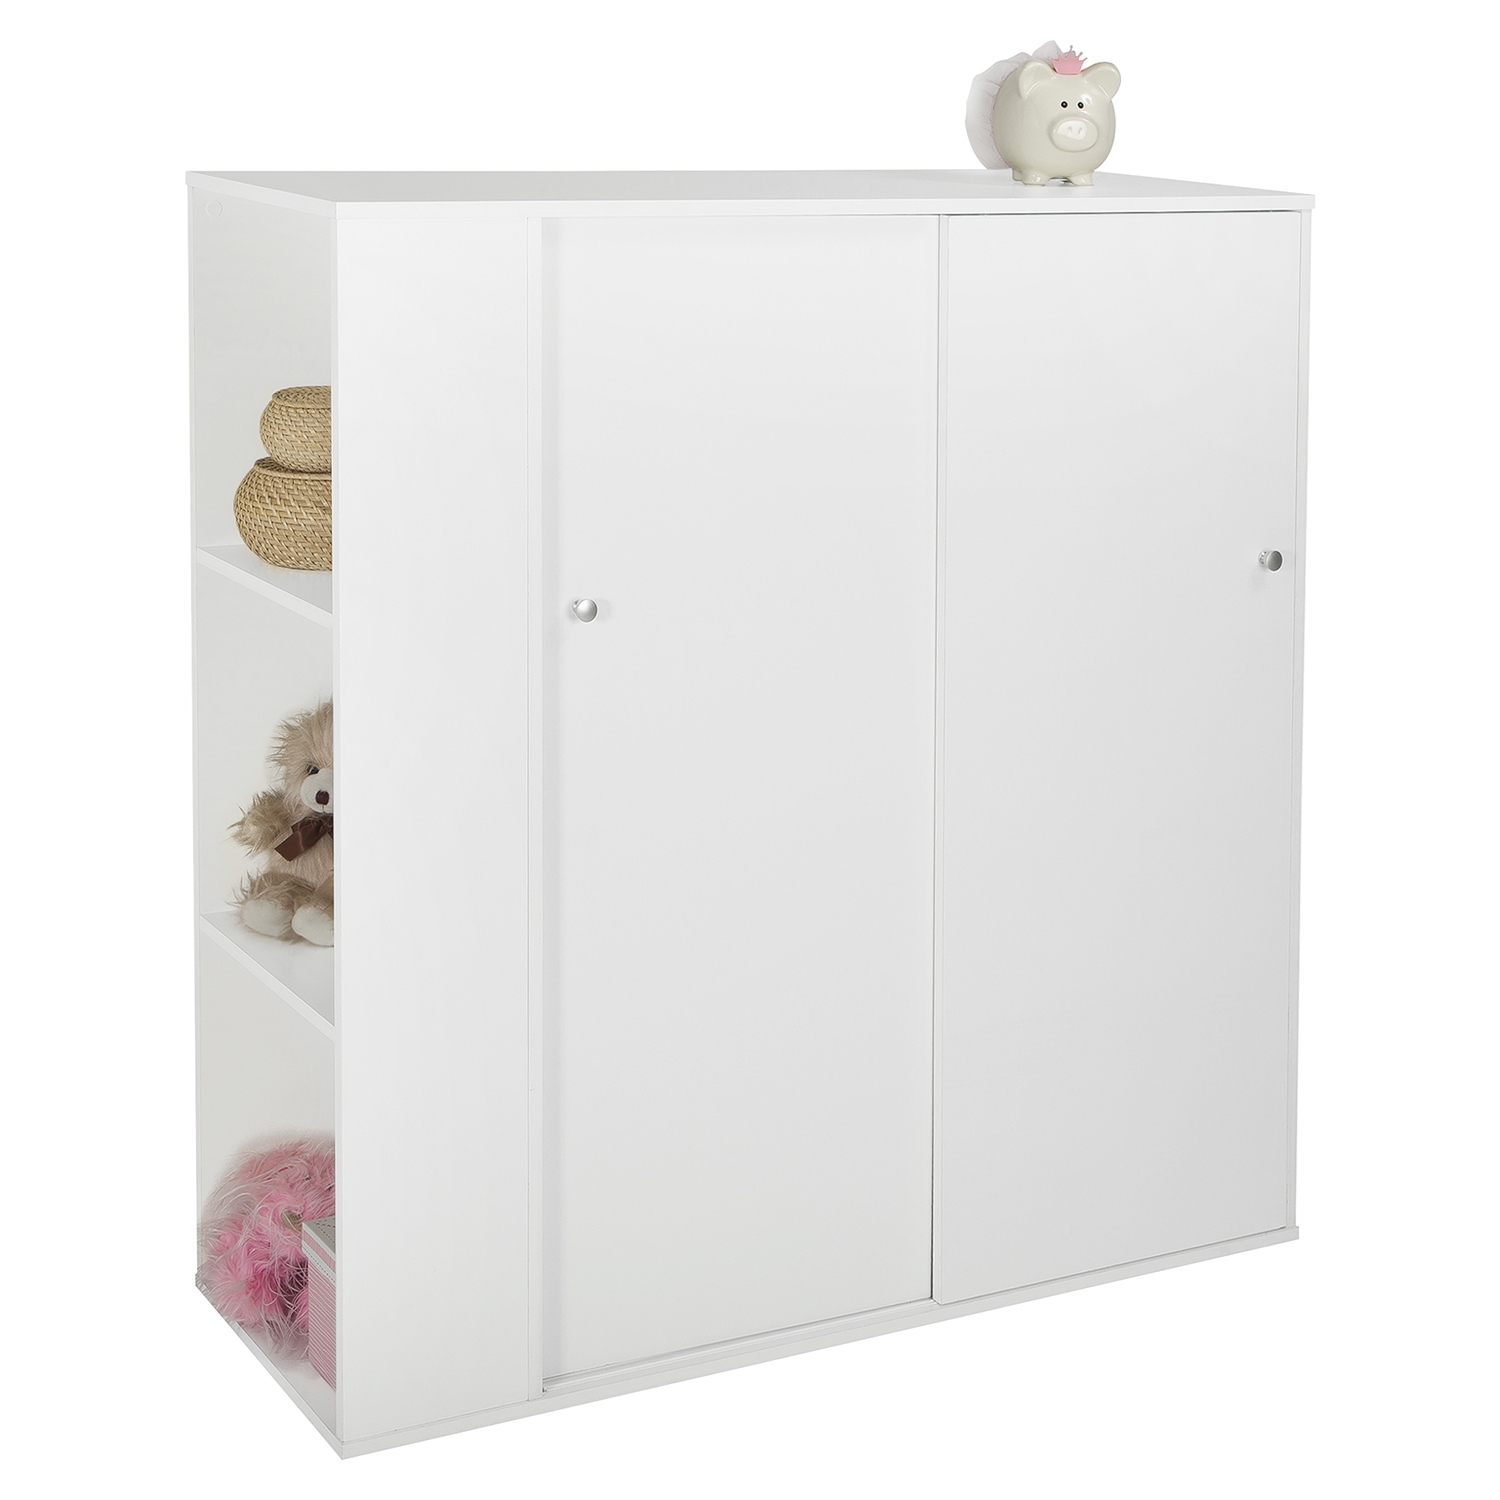 Storit Kids Storage Cabinet - 2 Sliding Doors, Pure White - SS-5050047